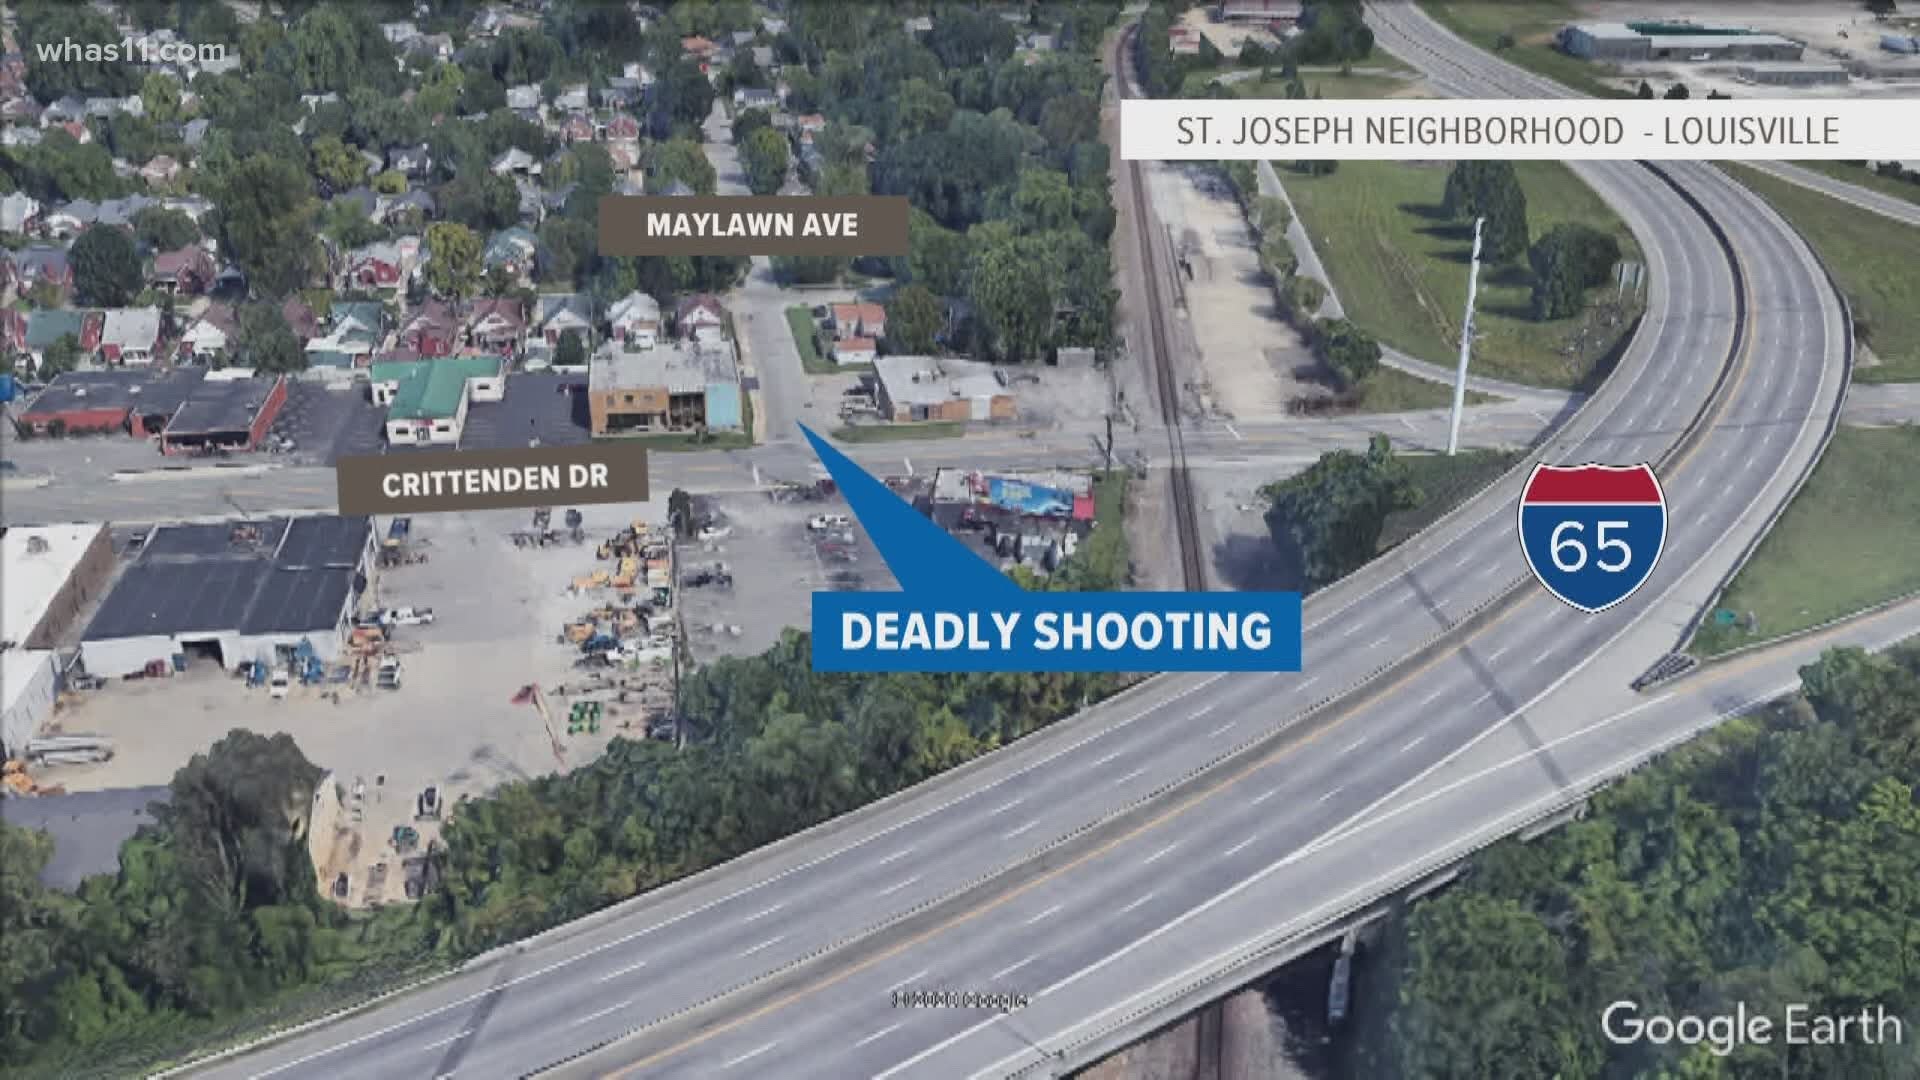 police investigating fatal shooting in st joseph neighborhood whas11 com police investigating fatal shooting in st joseph neighborhood